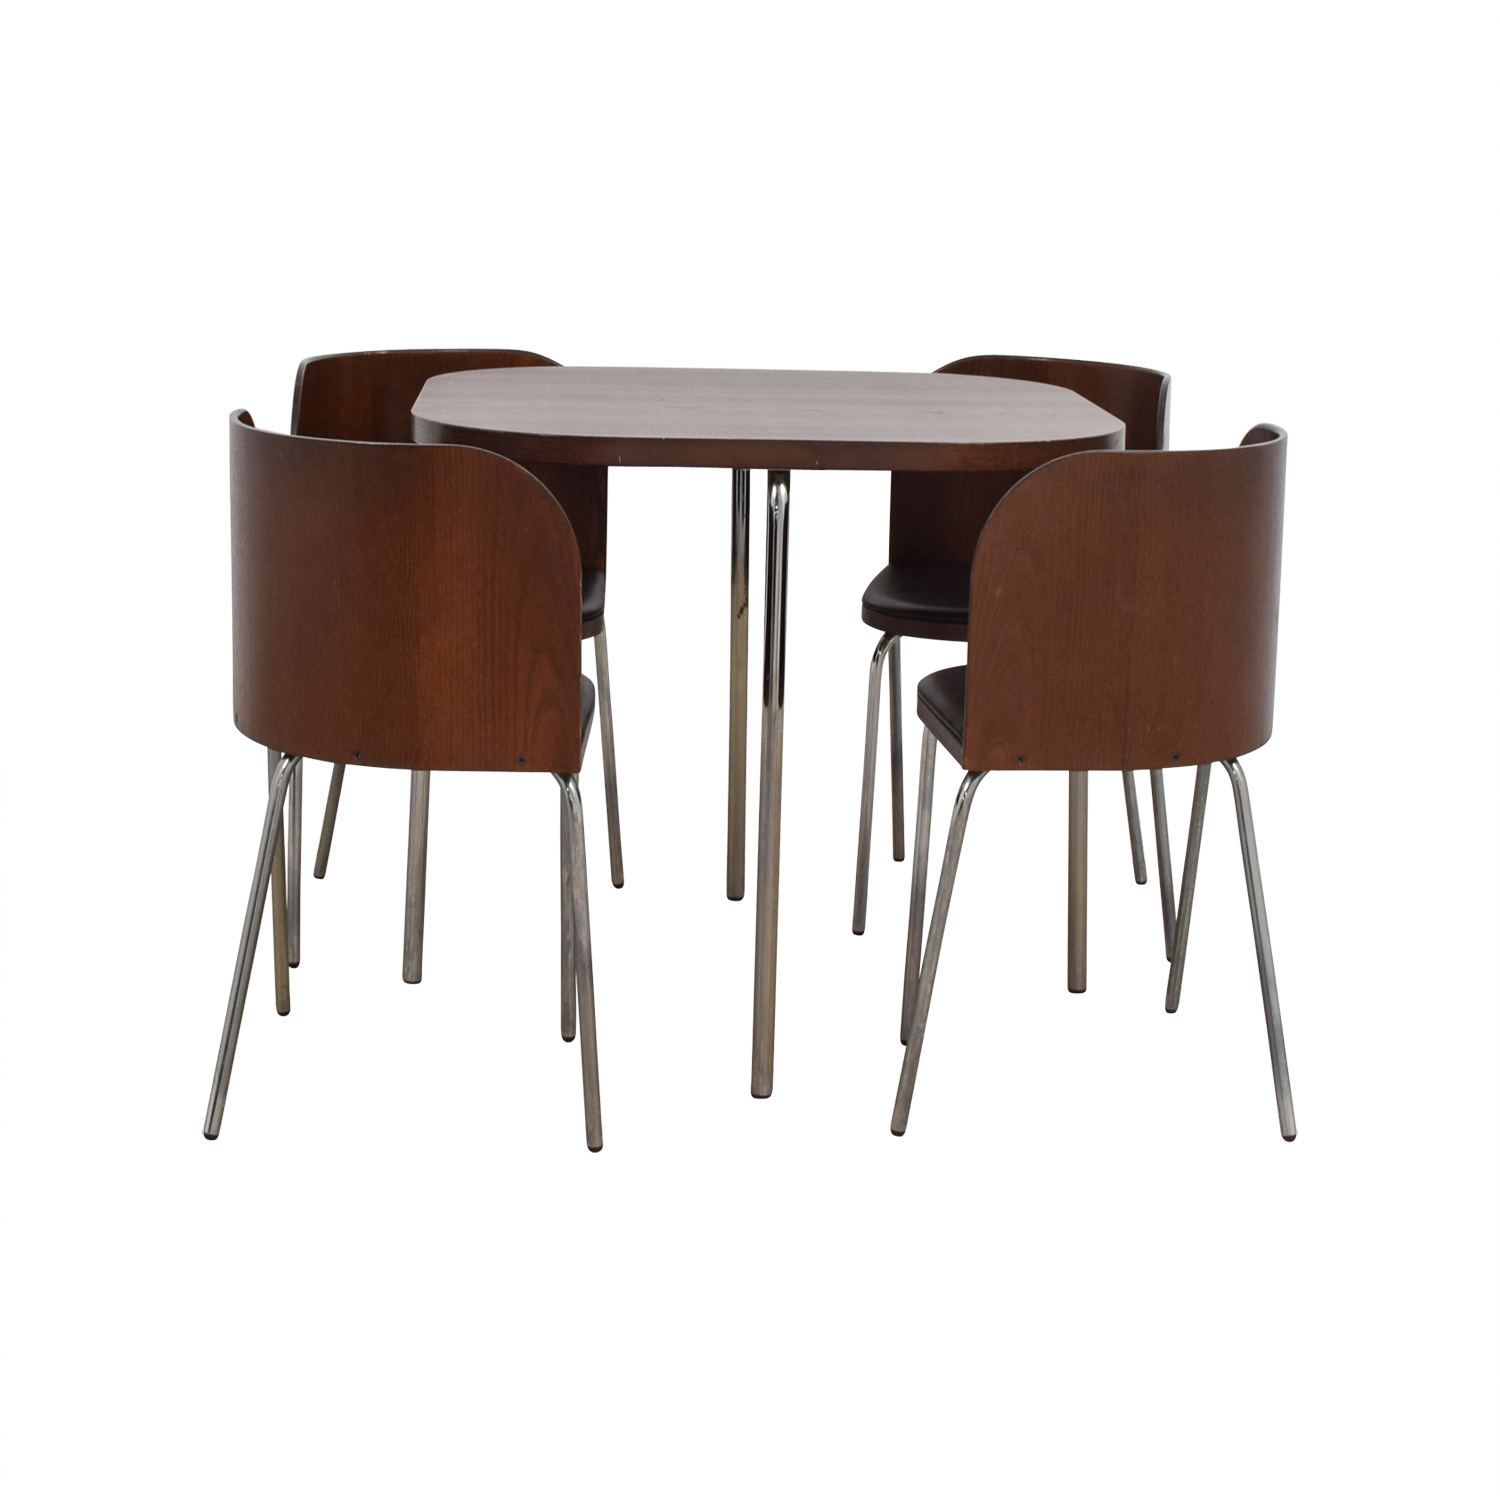 Black and Brown Rounded Square Dining Set / Sofas